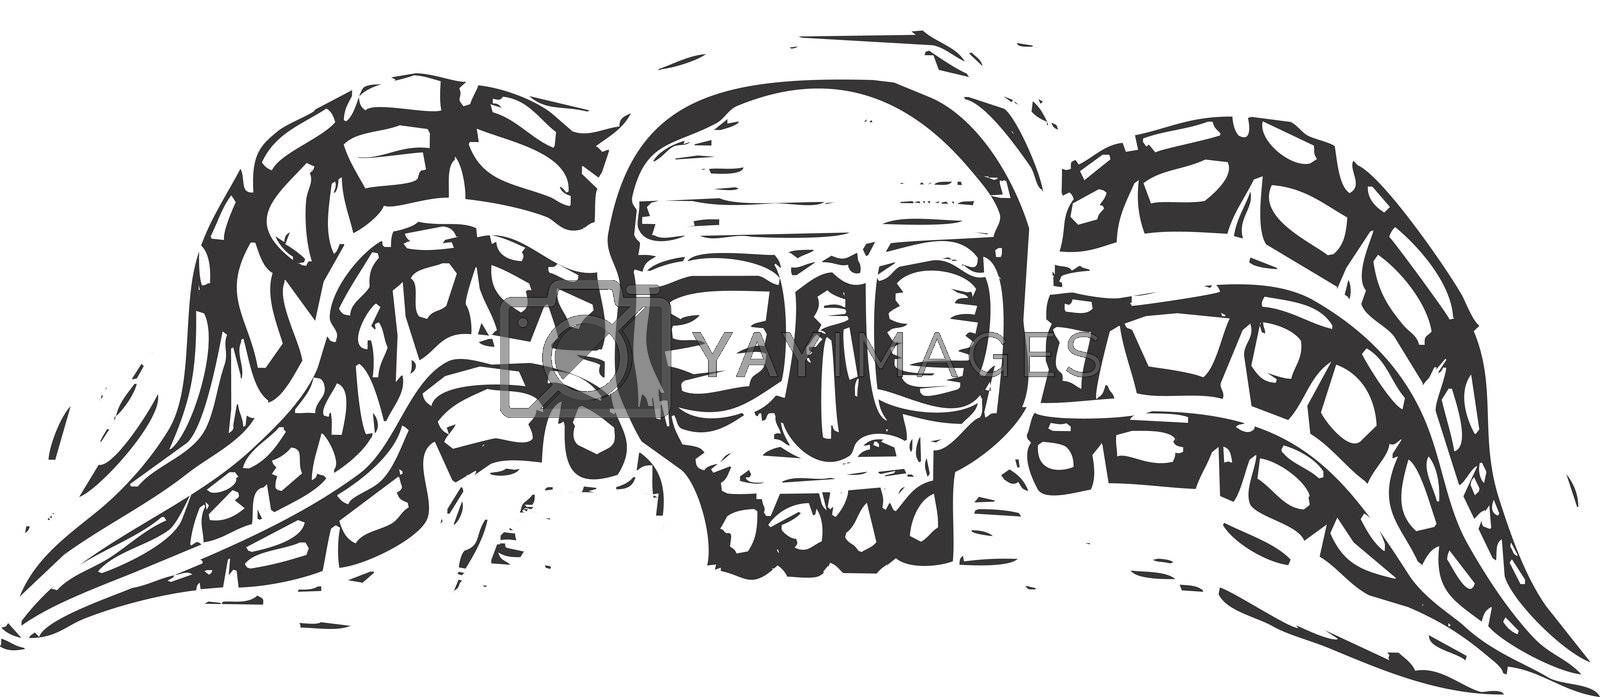 Winged skull design evoking the image of a gravestone from the 18th century.